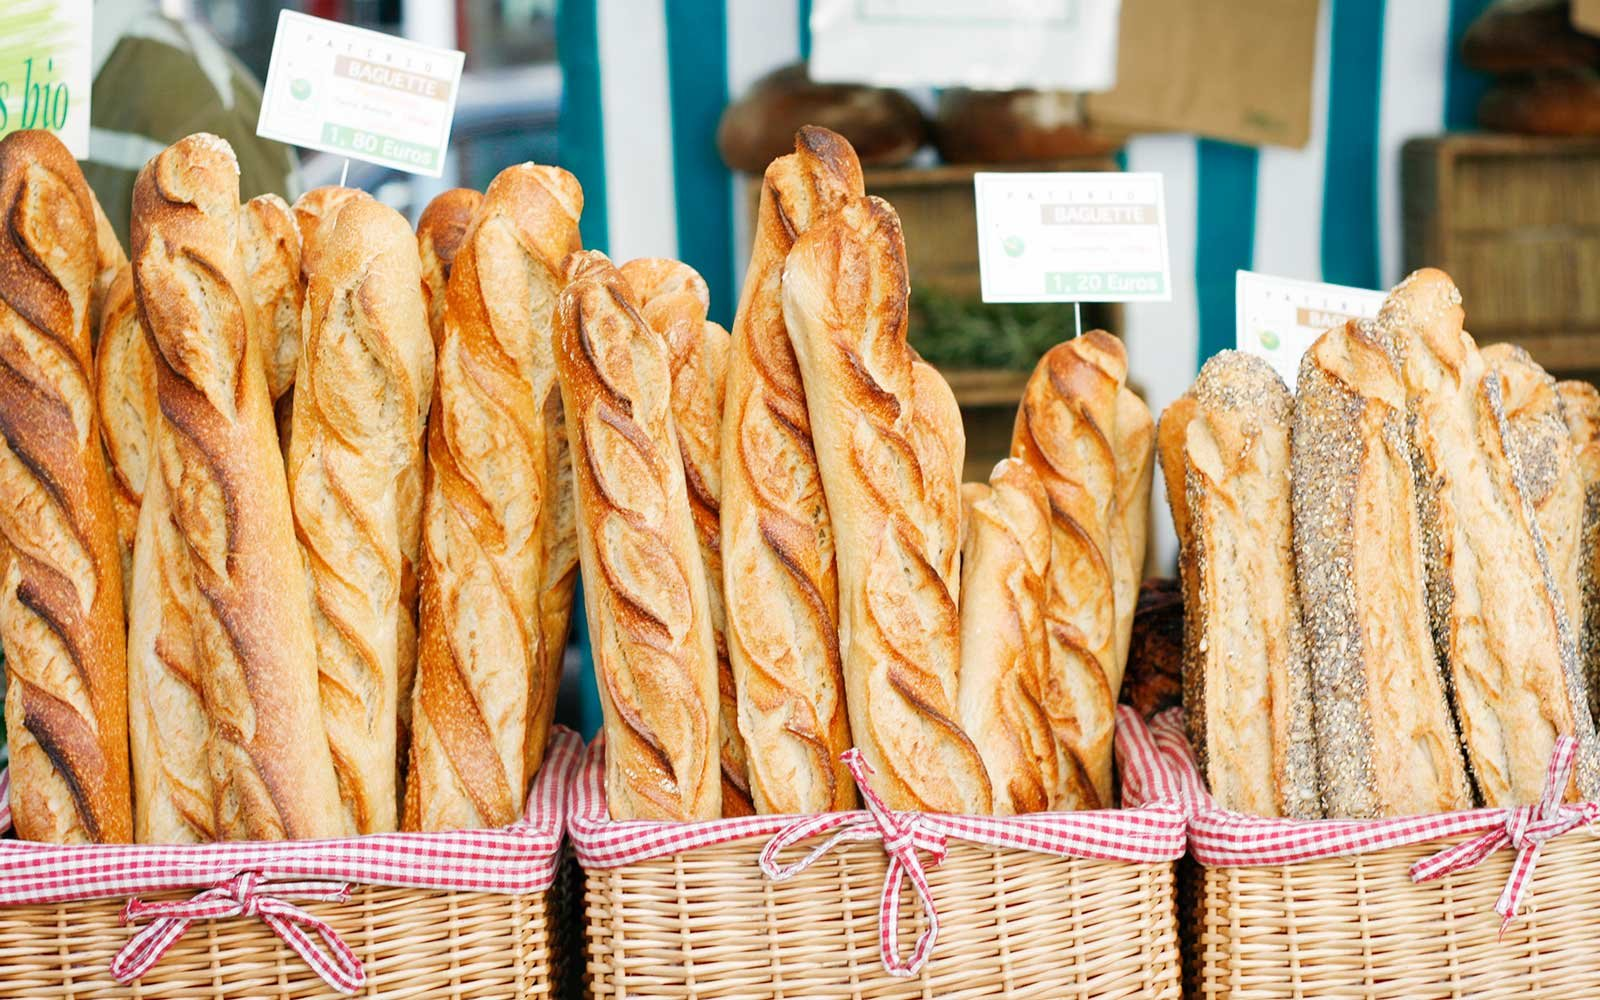 An assortment of freshly-baked baguettes on display in baskets at a farmer's market stall in Paris.